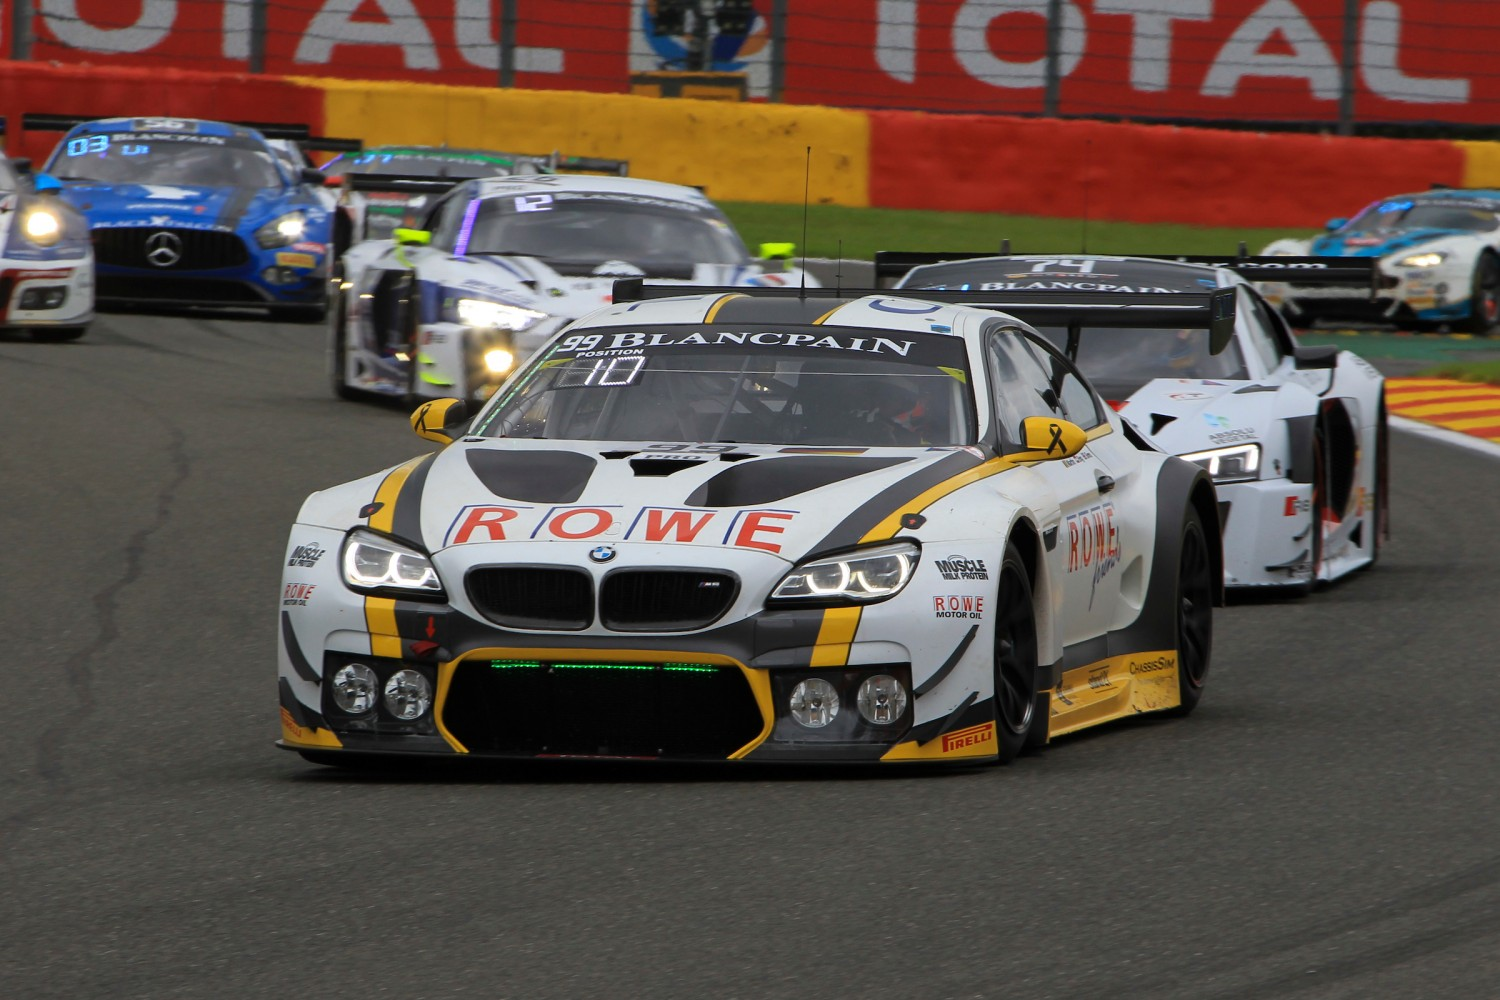 ROWE Racing aiming for a repeat win in Total 24 Hours of Spa